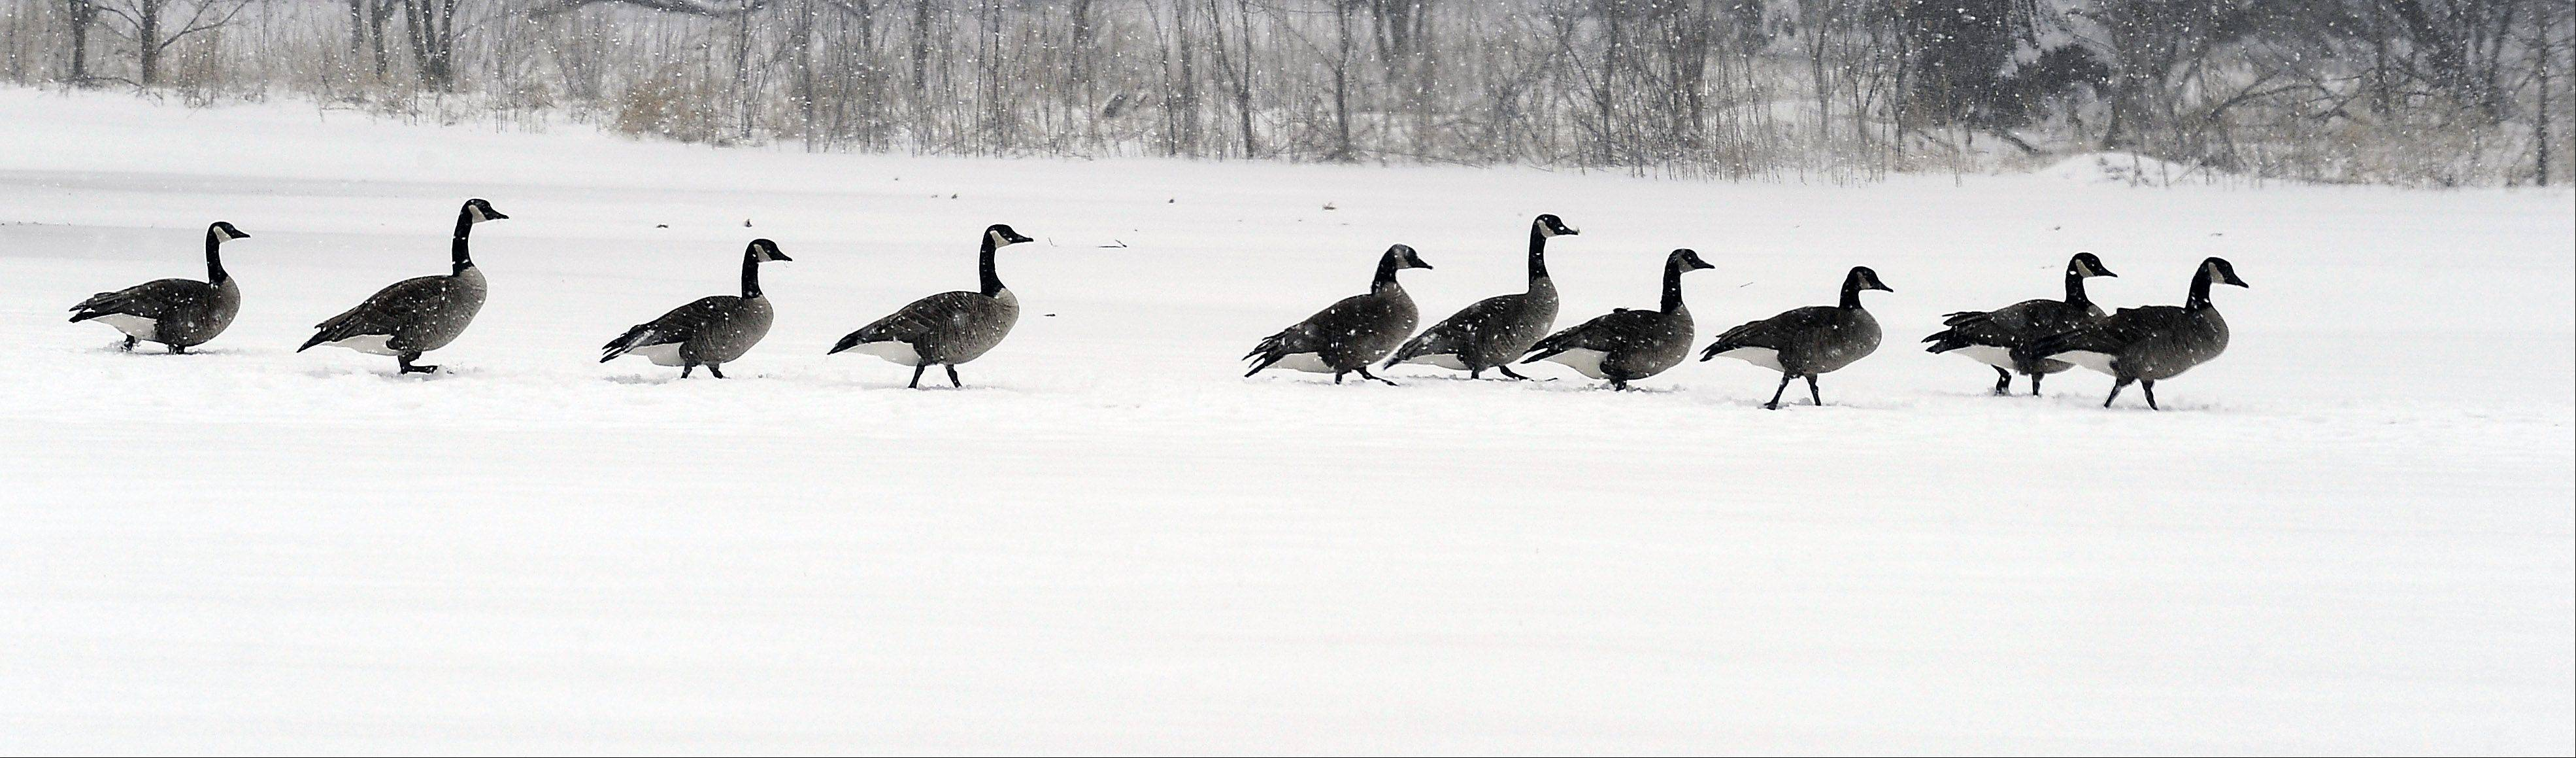 The winter storm that blew through the Northwest suburbs on Tuesday didn't slow down these geese as they moved through Elk Grove Village.